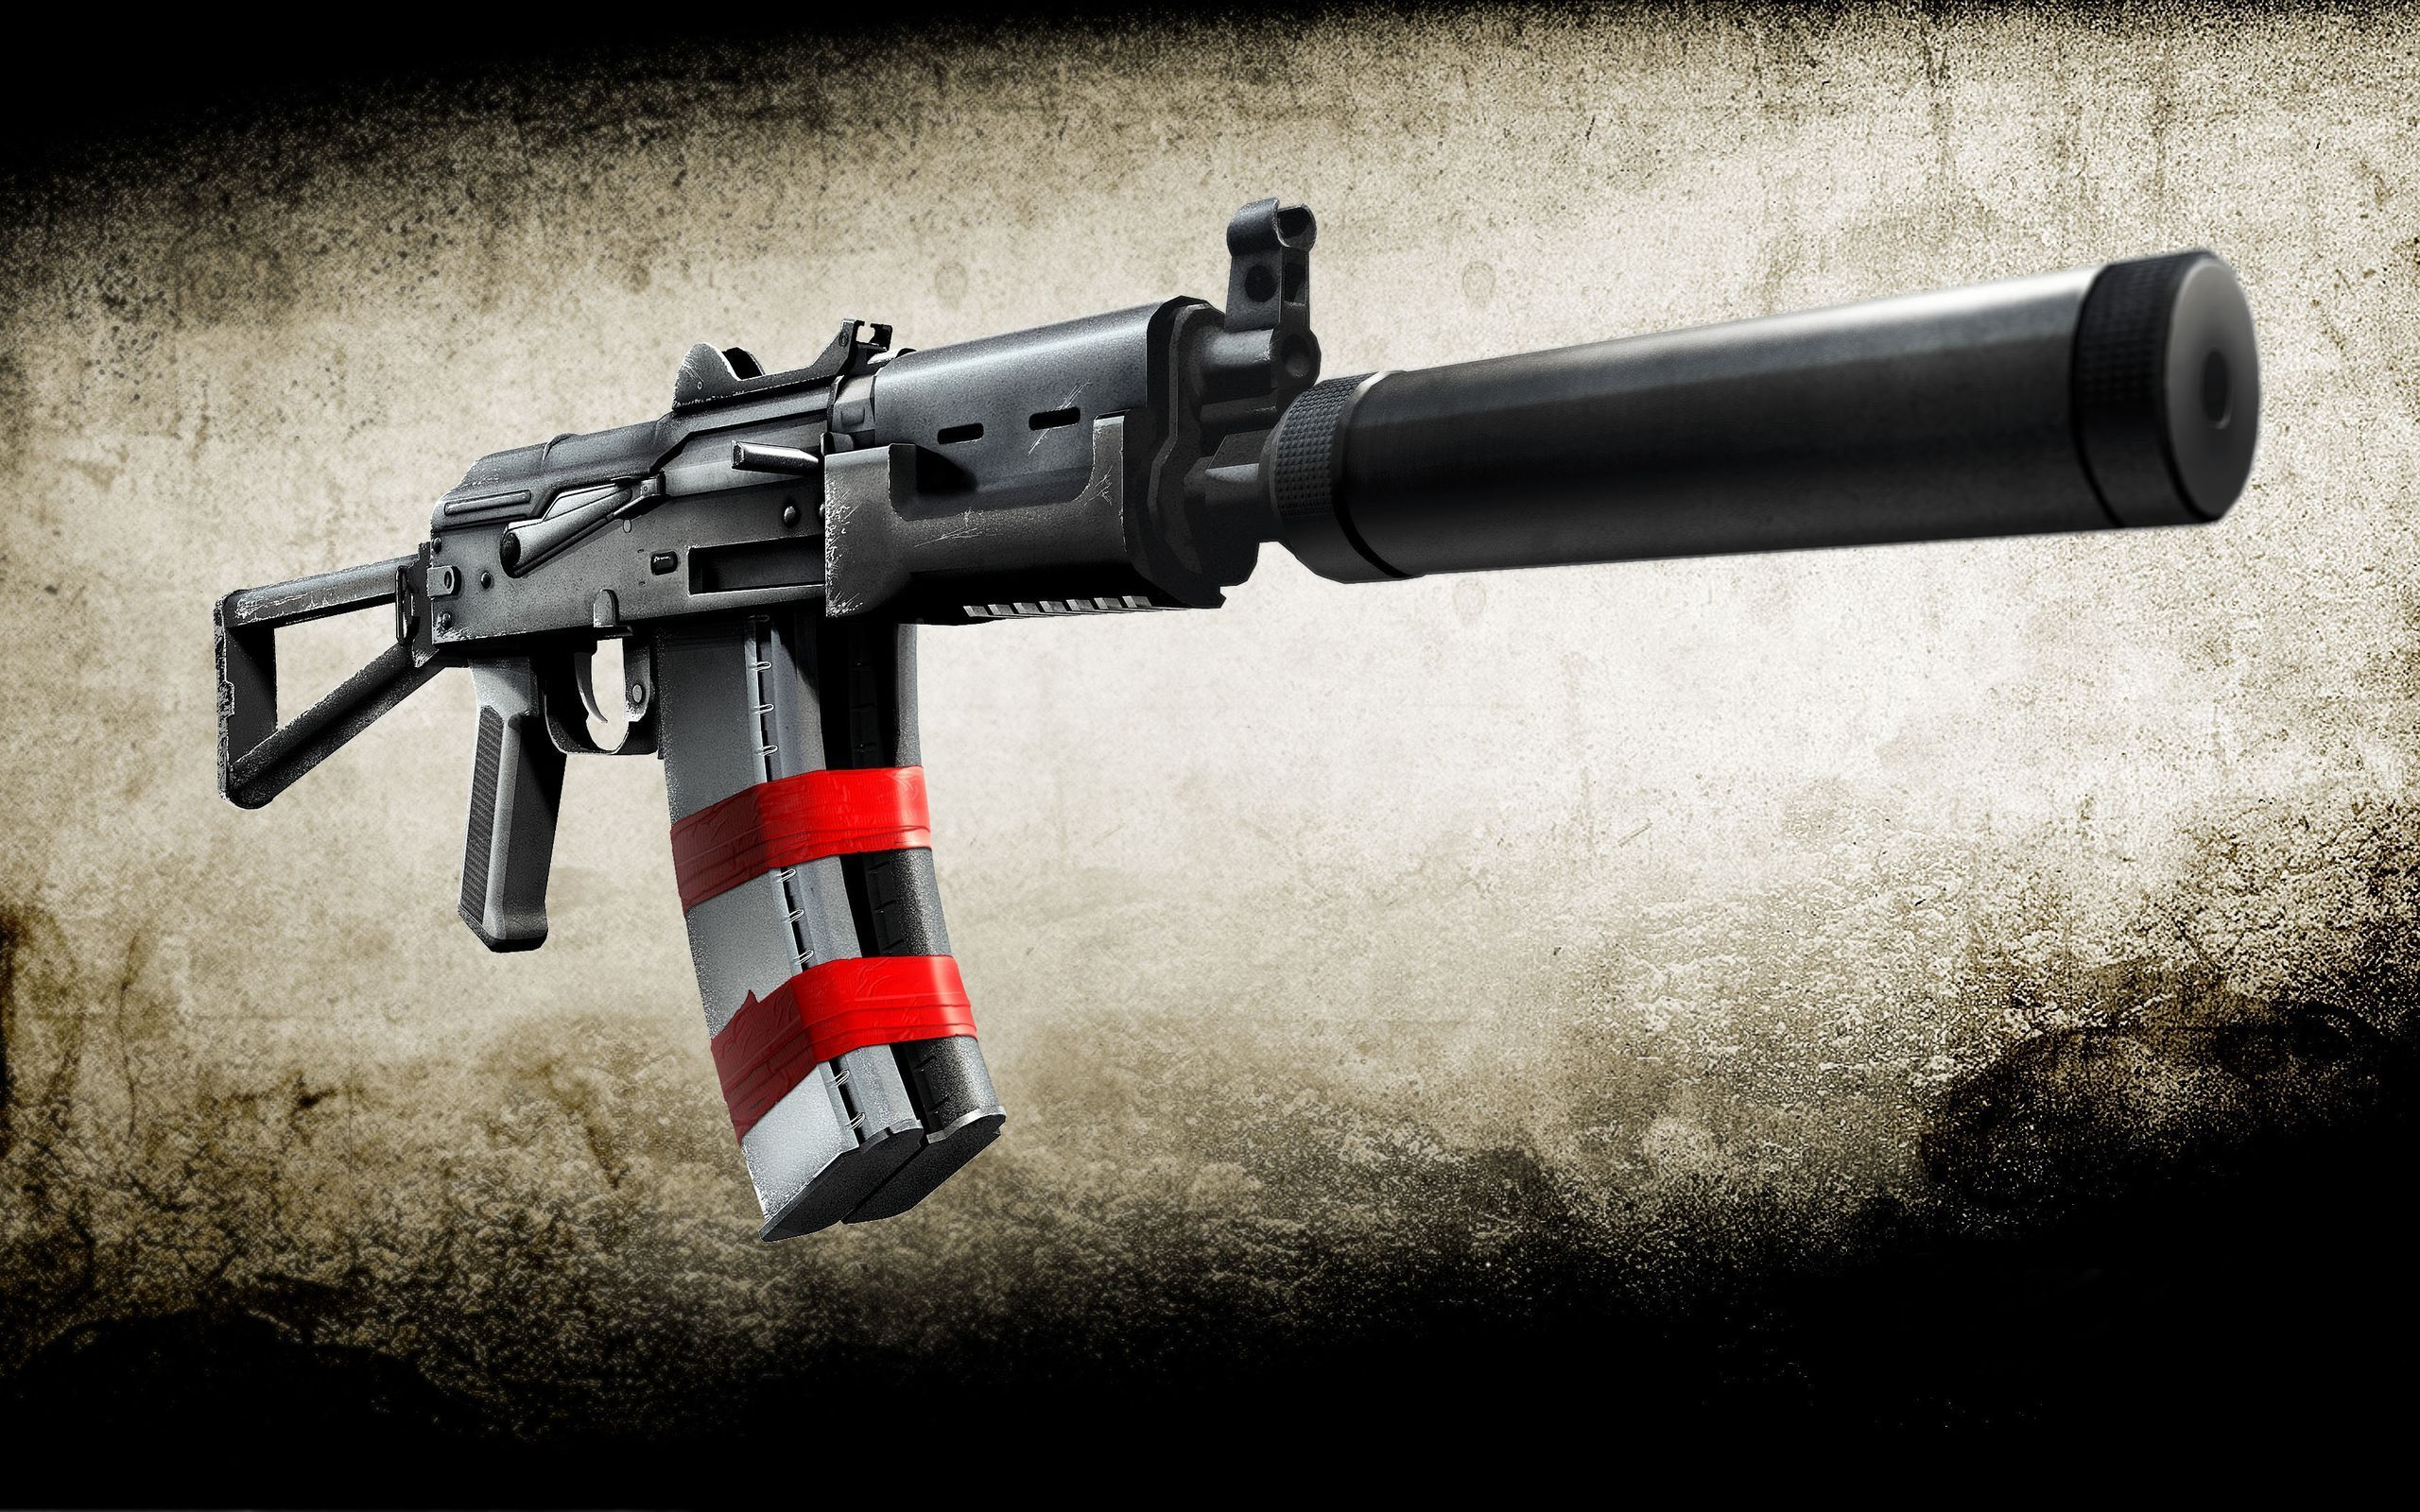 Battlefield Bad Company 2 Weapons